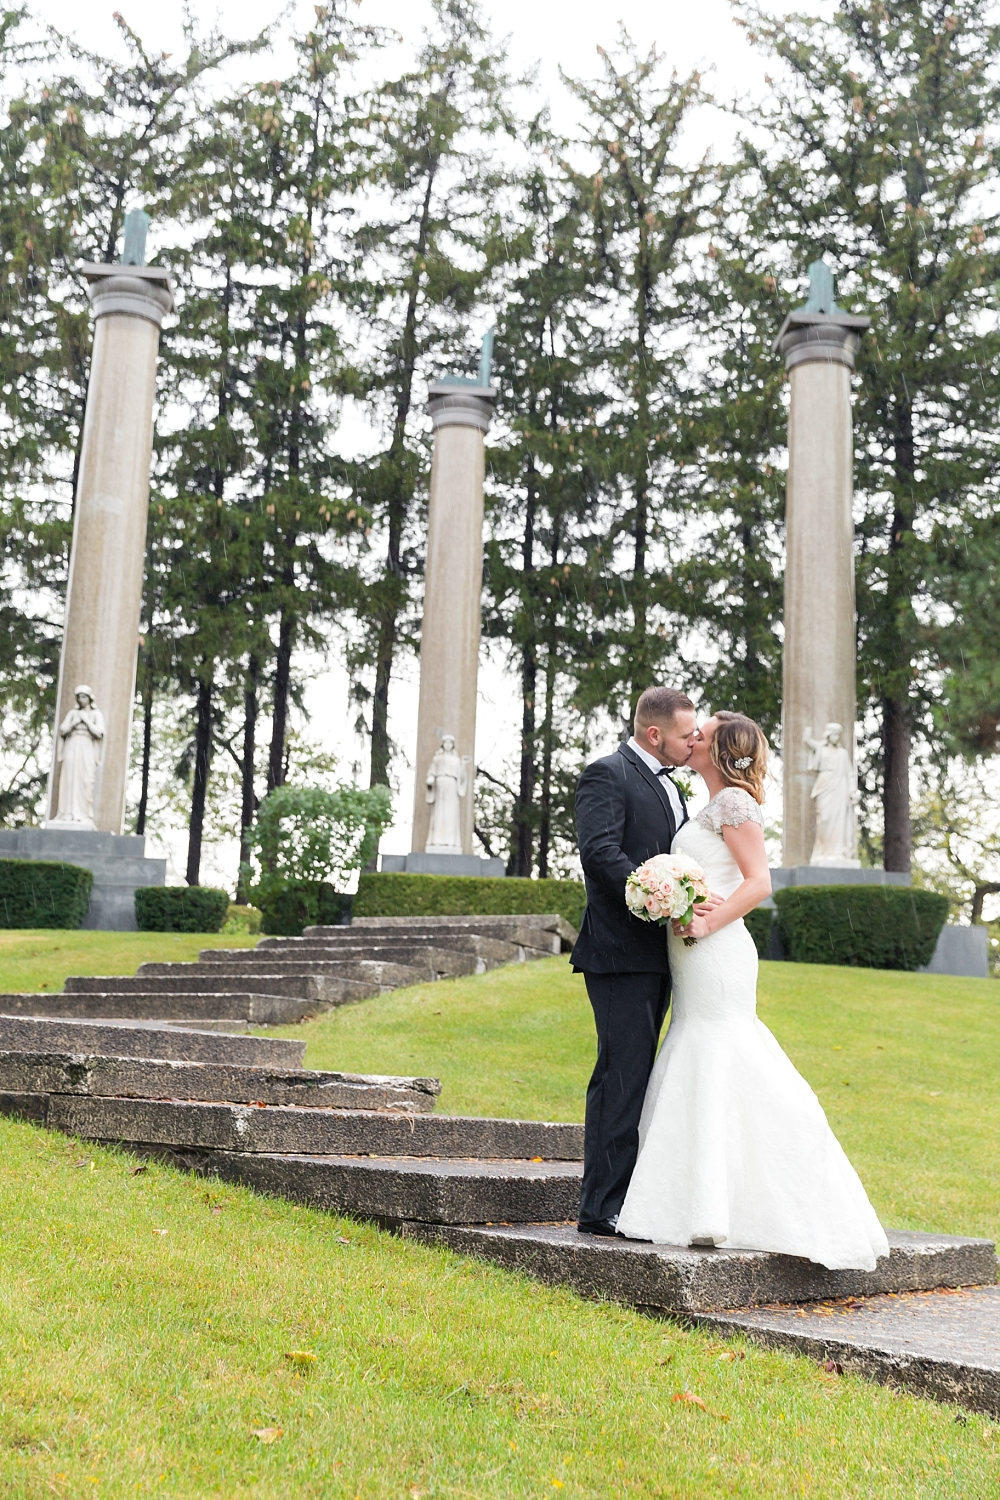 You will never guess that this wedding took place in a cemetery...the couple met at Mortuary Science school...how AWESOME is that!?!?!